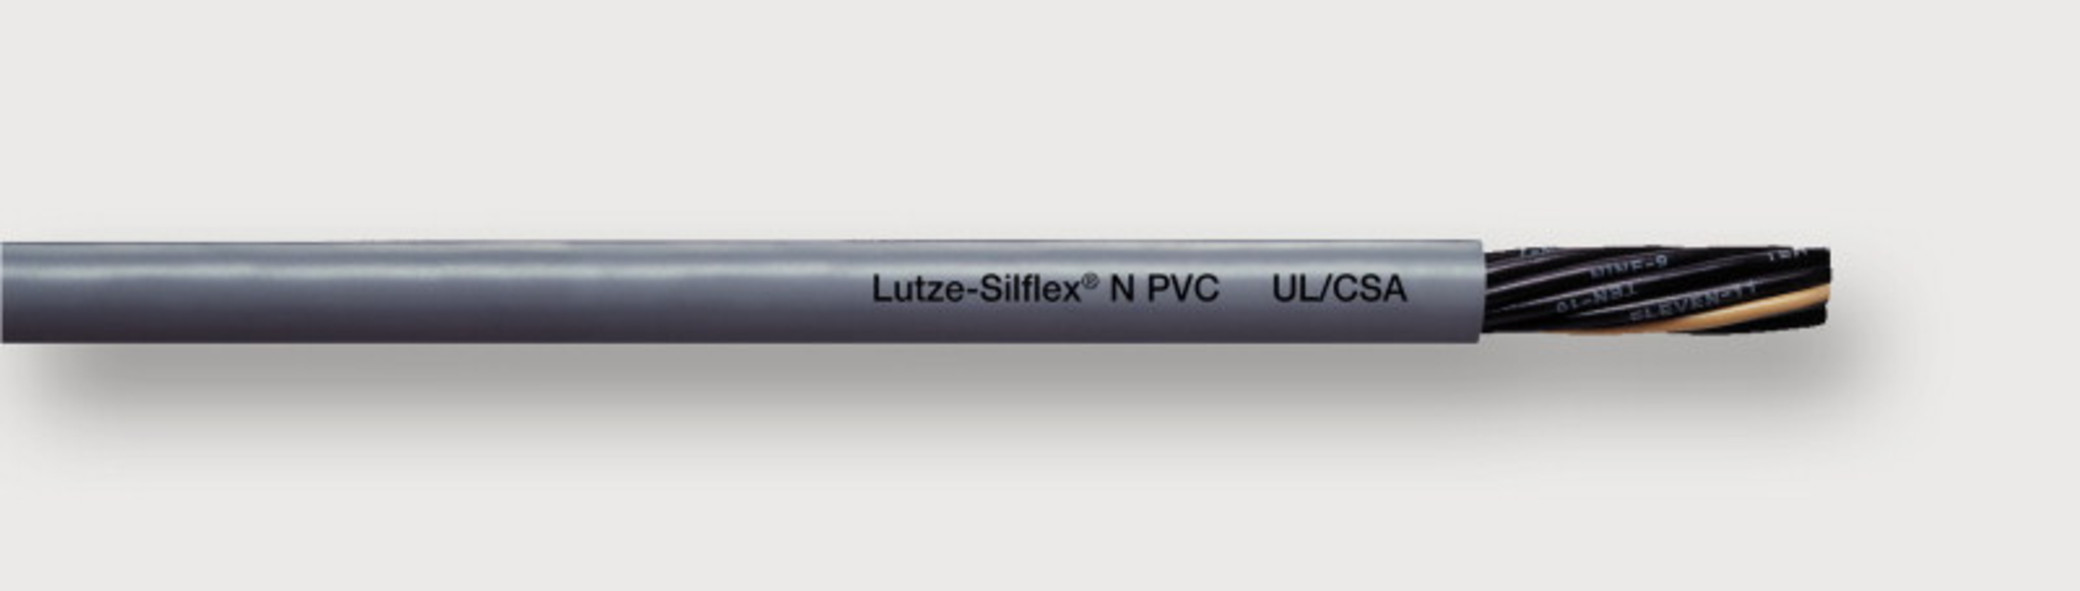 108372A - LÜTZE SILFLEX® N PVC with UL/CE Approvals